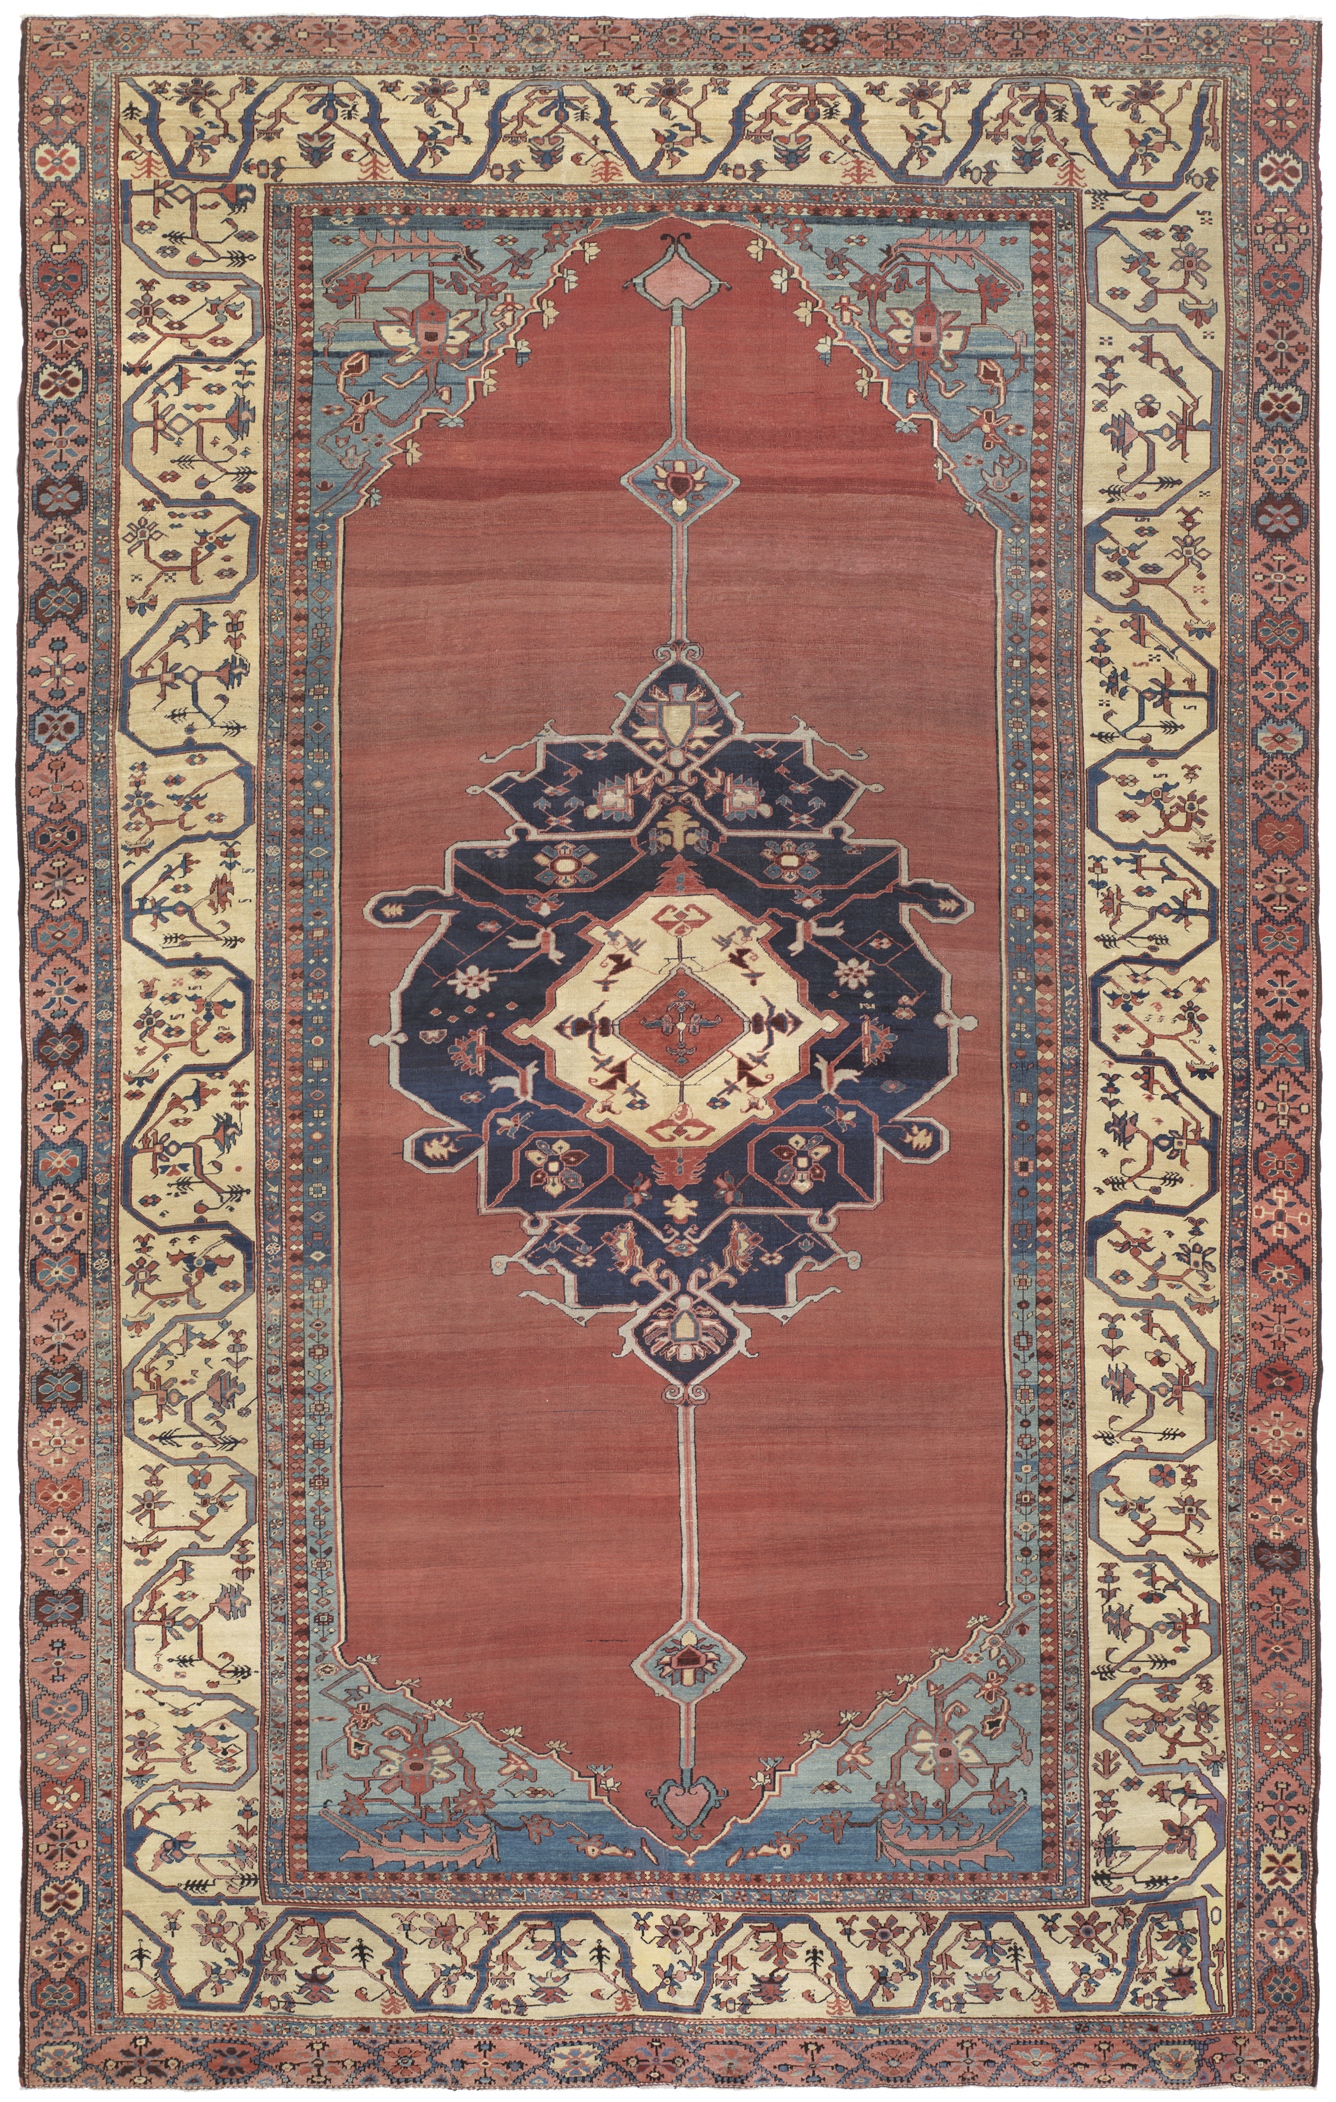 Claremont Rug Company Names Best Of The Best Antique Rugs Sold In 2015 With  5th Annual Online Gallery Exhibition | Business Wire